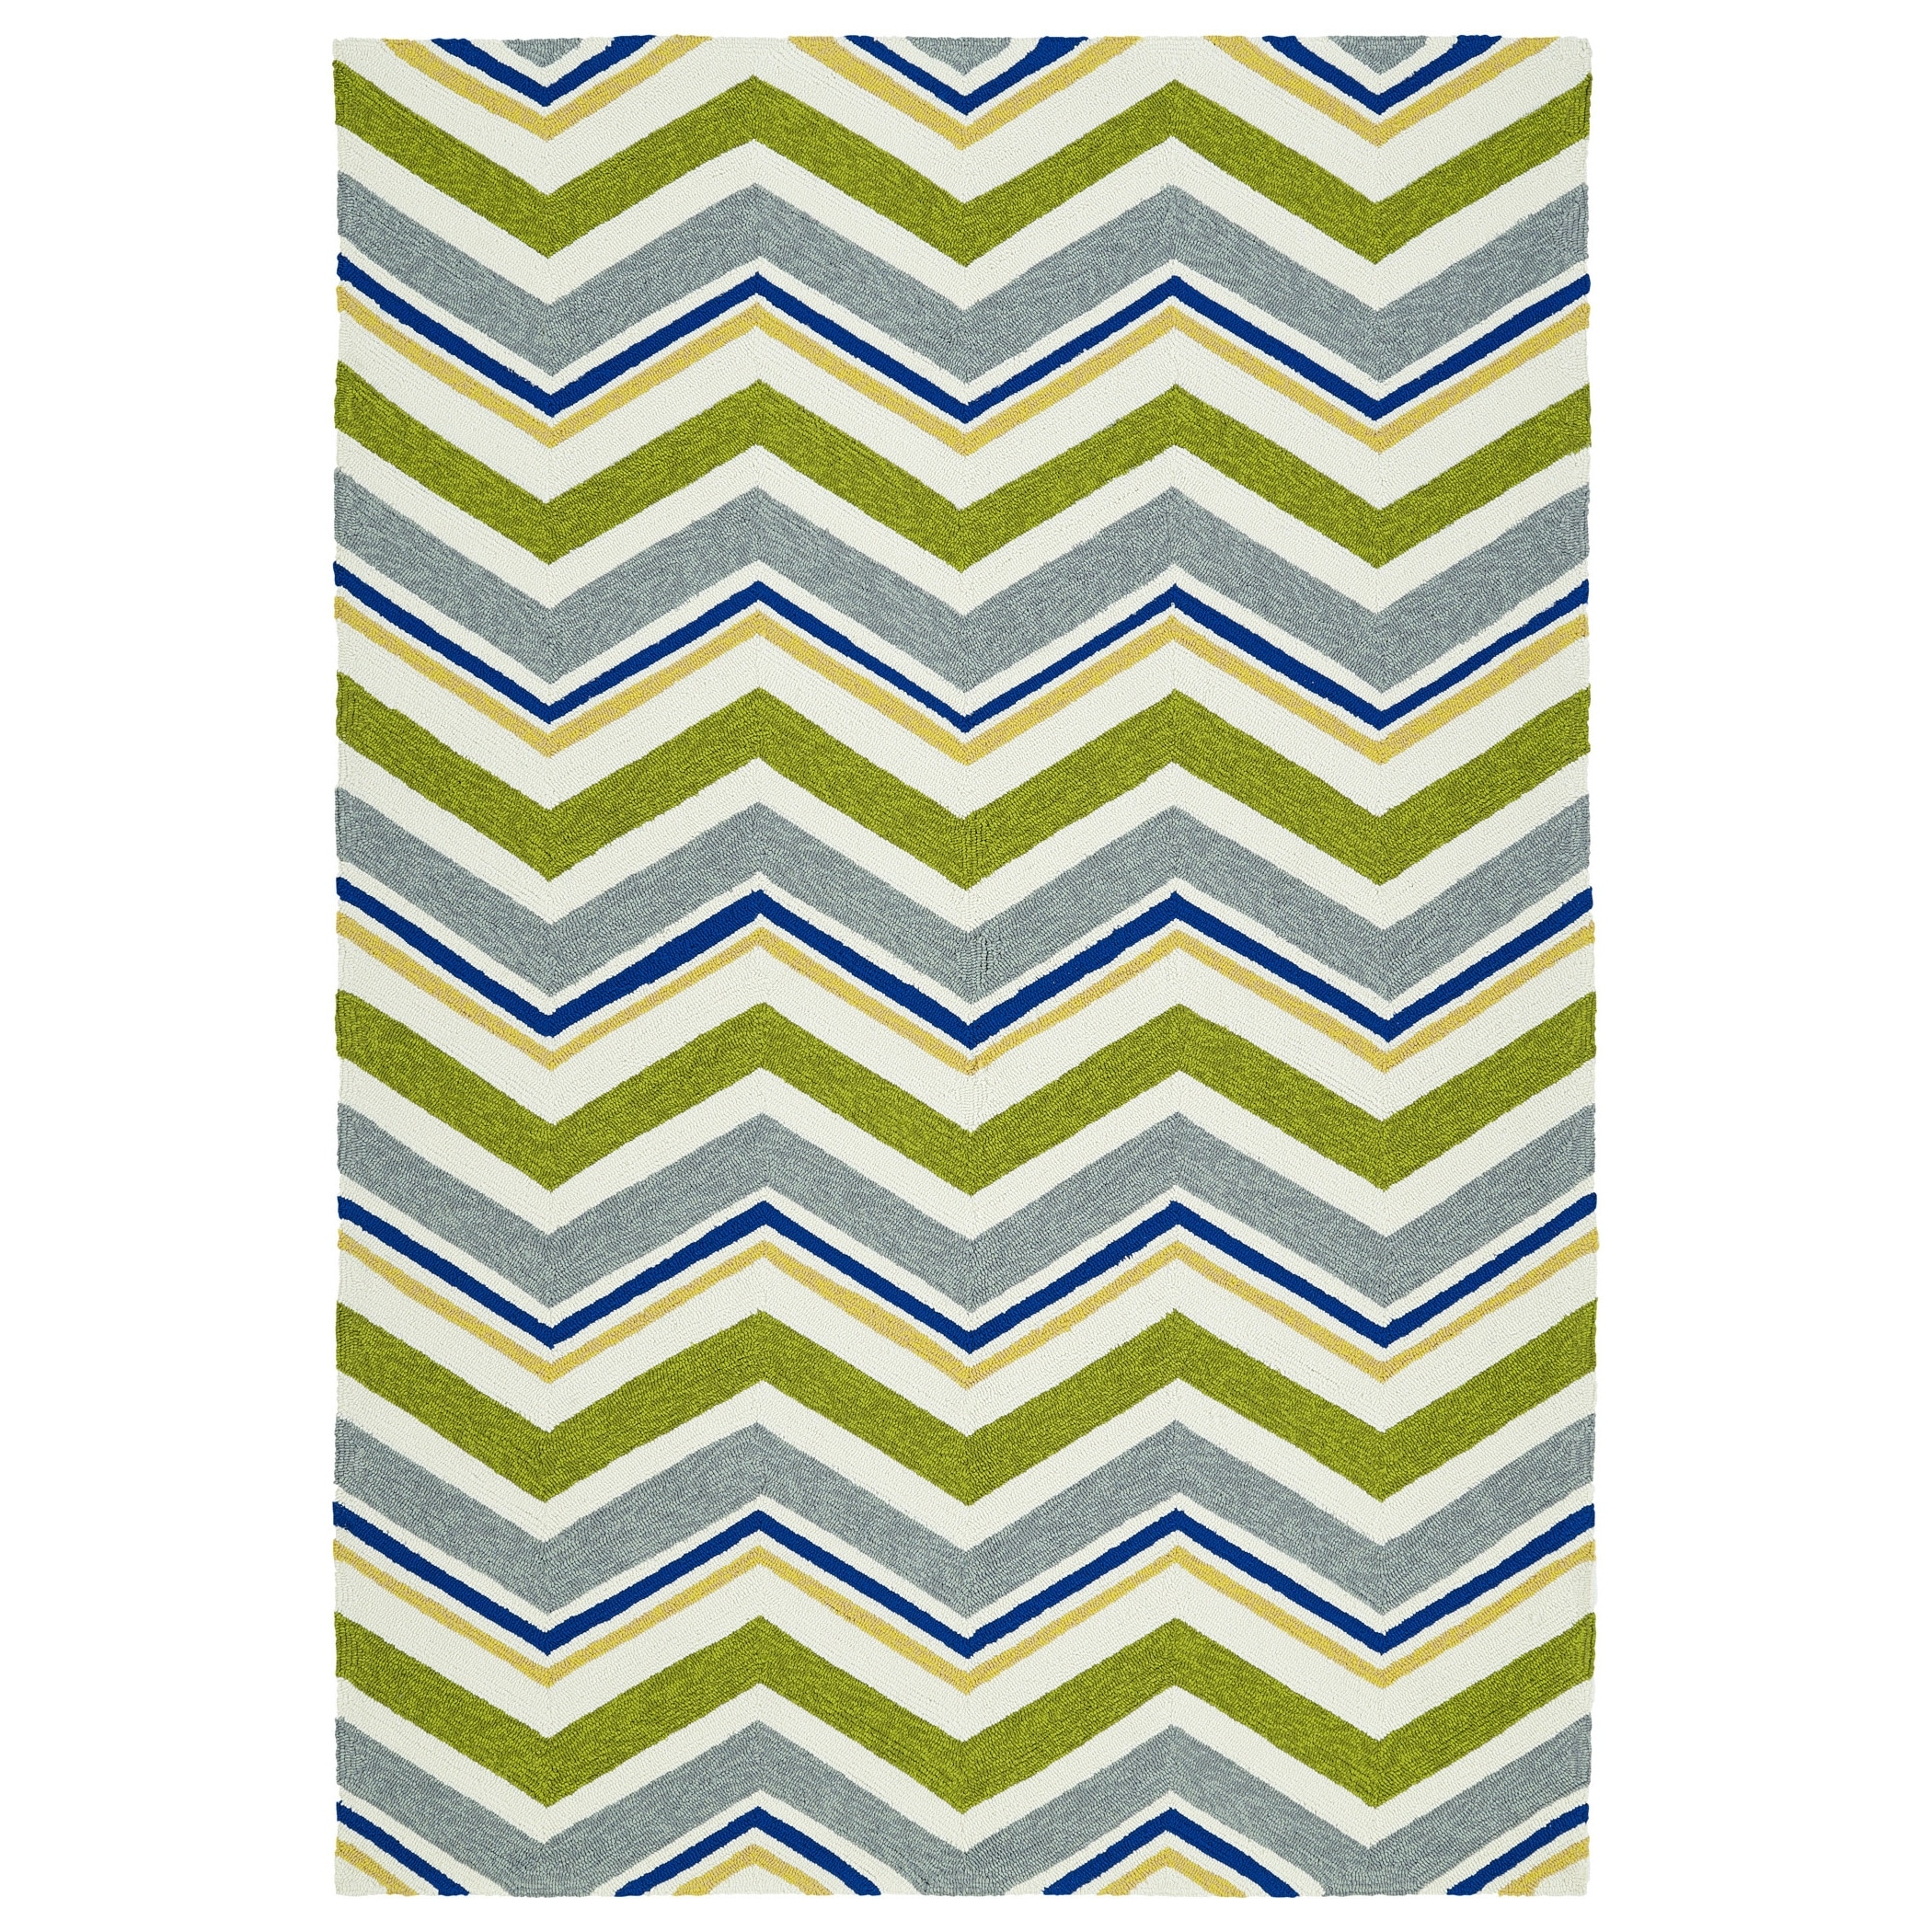 Kaleen ESC05-50 Escape Collection Non-skid Apple Green Tweed & Grey Tweed Outdoor Rug